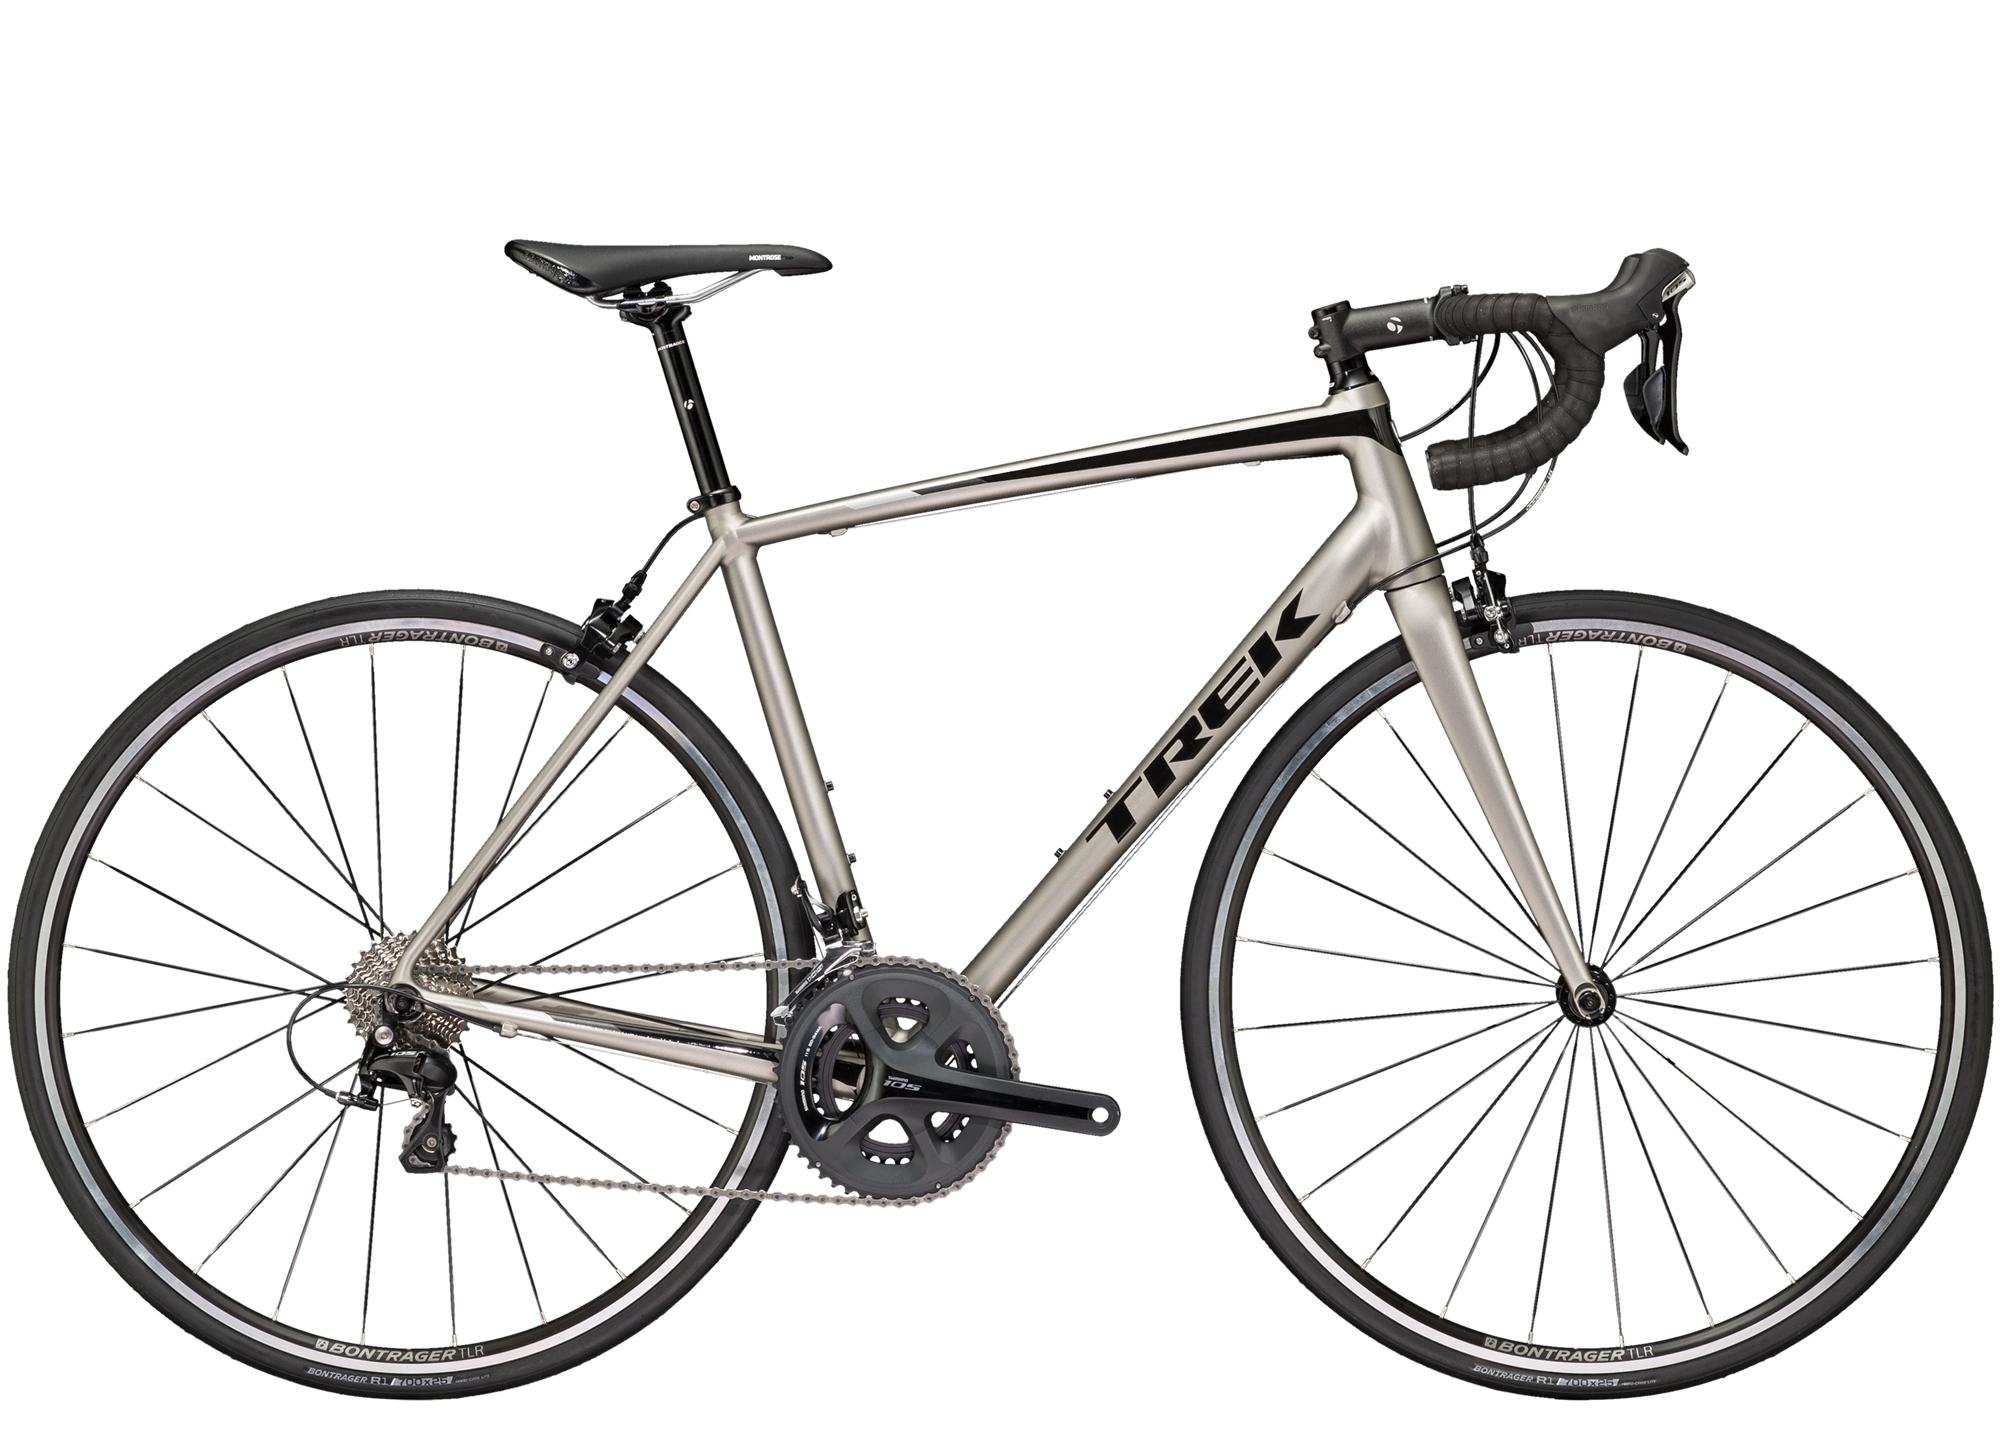 https://trek.scene7.com/is/image/TrekBicycleProducts/1406000_2018_A_1_Emonda_ALR_5?wid=2000